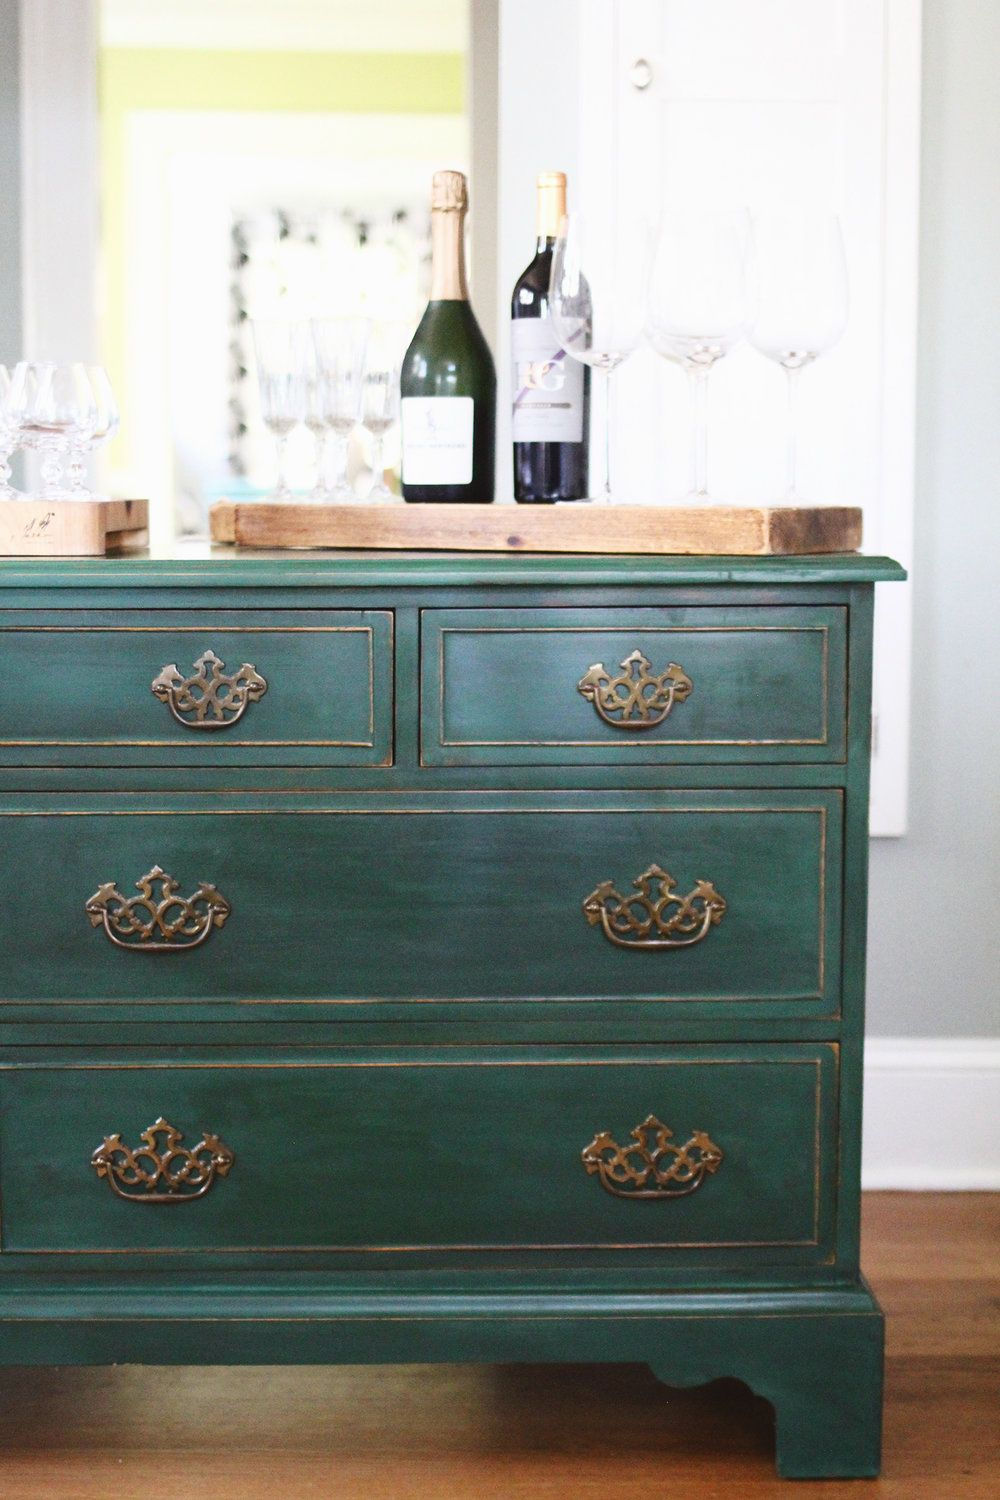 Testing New Colors Annie Sloan Amsterdam Green Dresser A Simpler Design A Hub For All Things Creative Stylist Photography Graphic Design Home Decor Painted Bedroom Furniture Green Dresser Painted Furniture